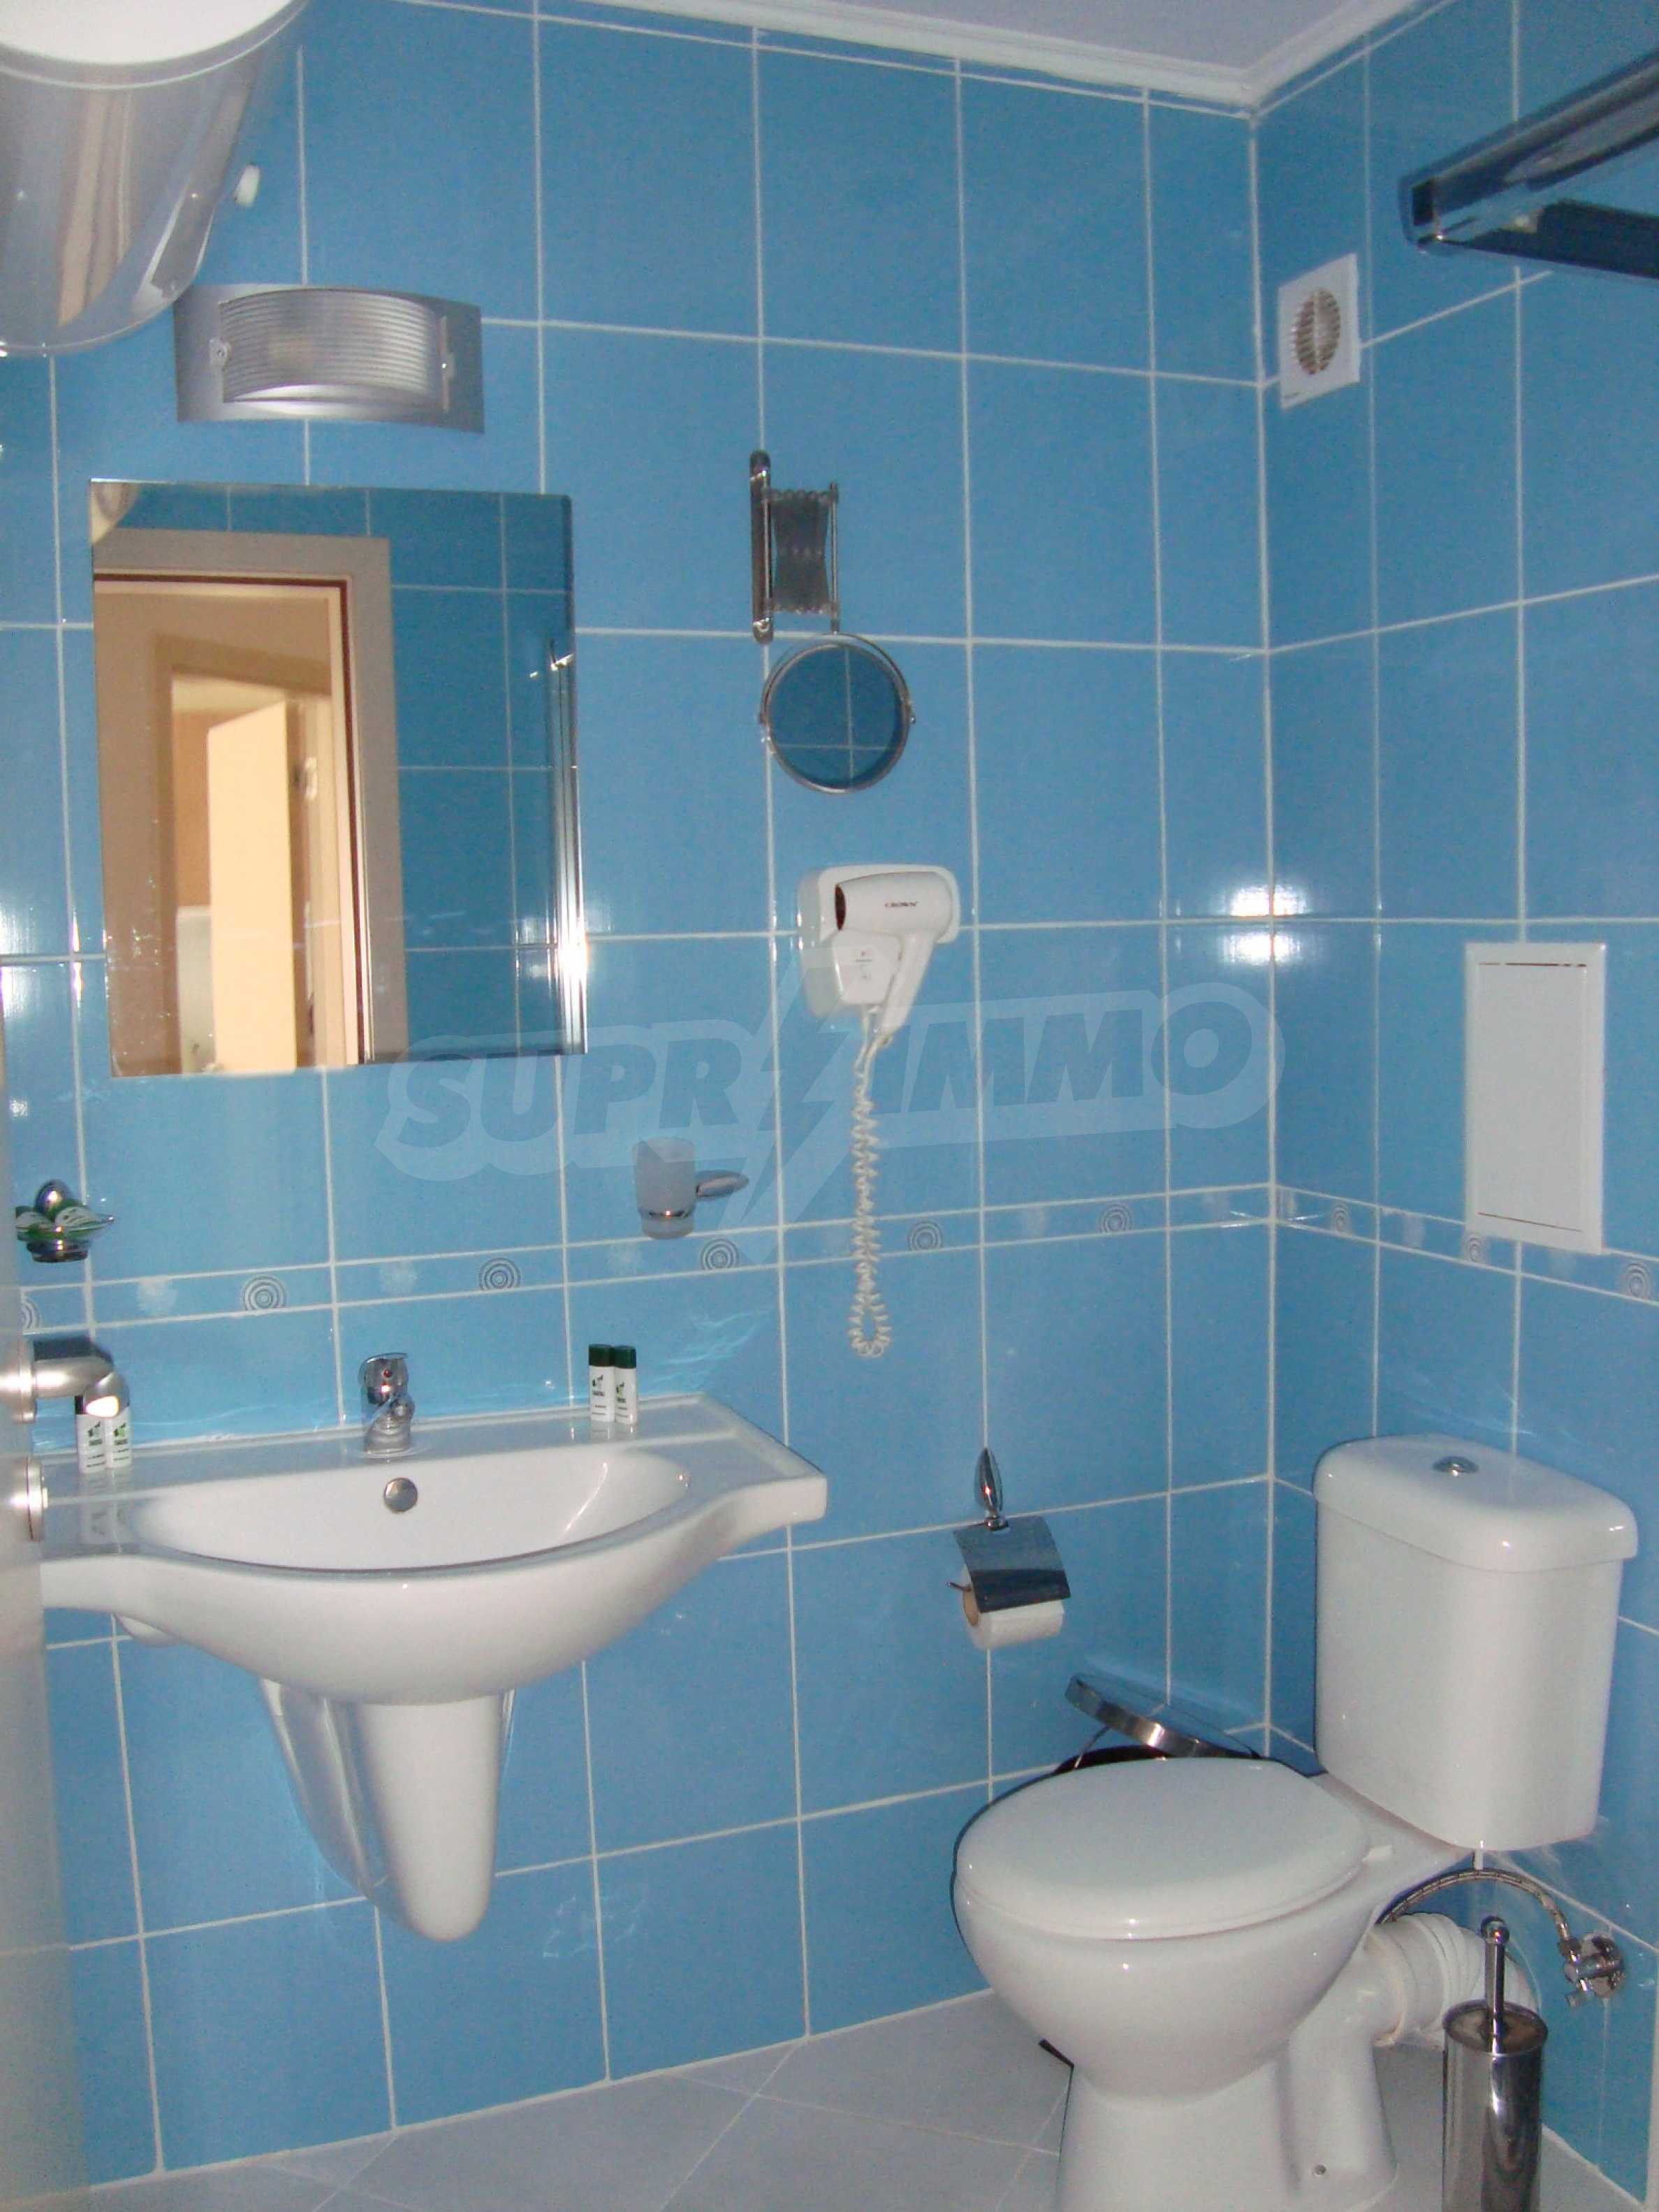 1-bedroom apartment in Emberli complex in Lozenets 5